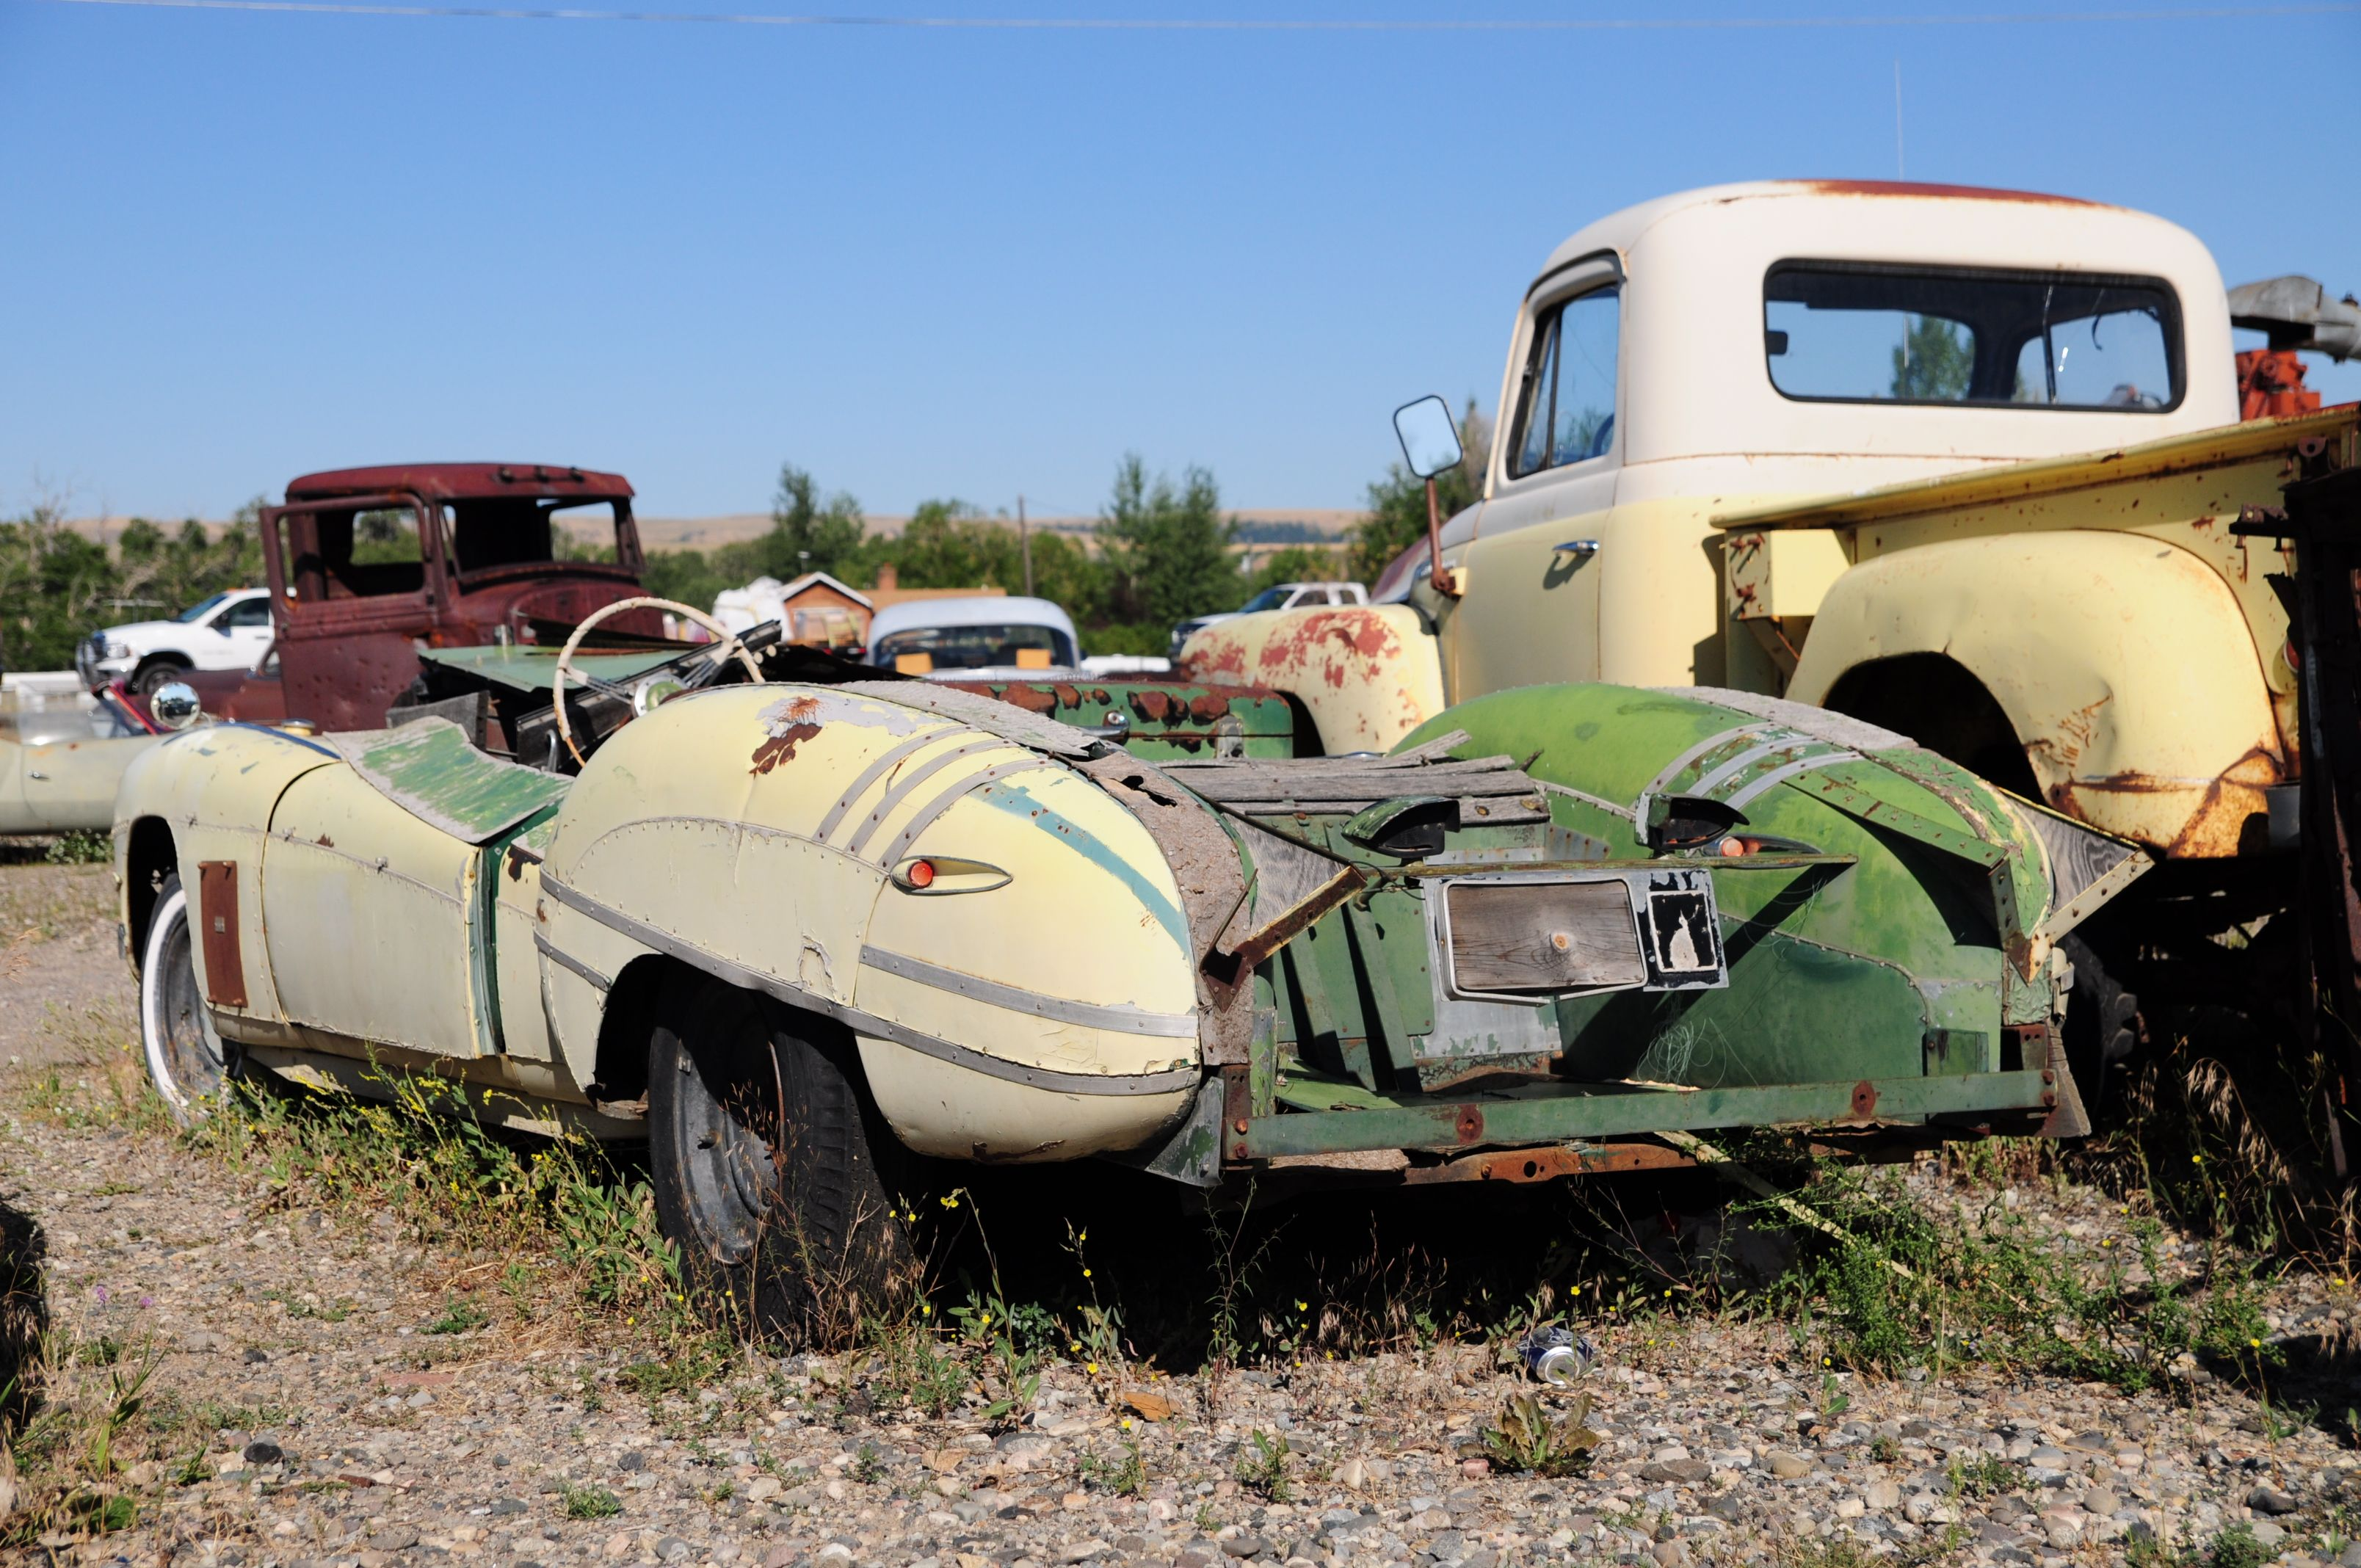 pictures or scrap cars   ... group of subaru pa seattle wa70 ...